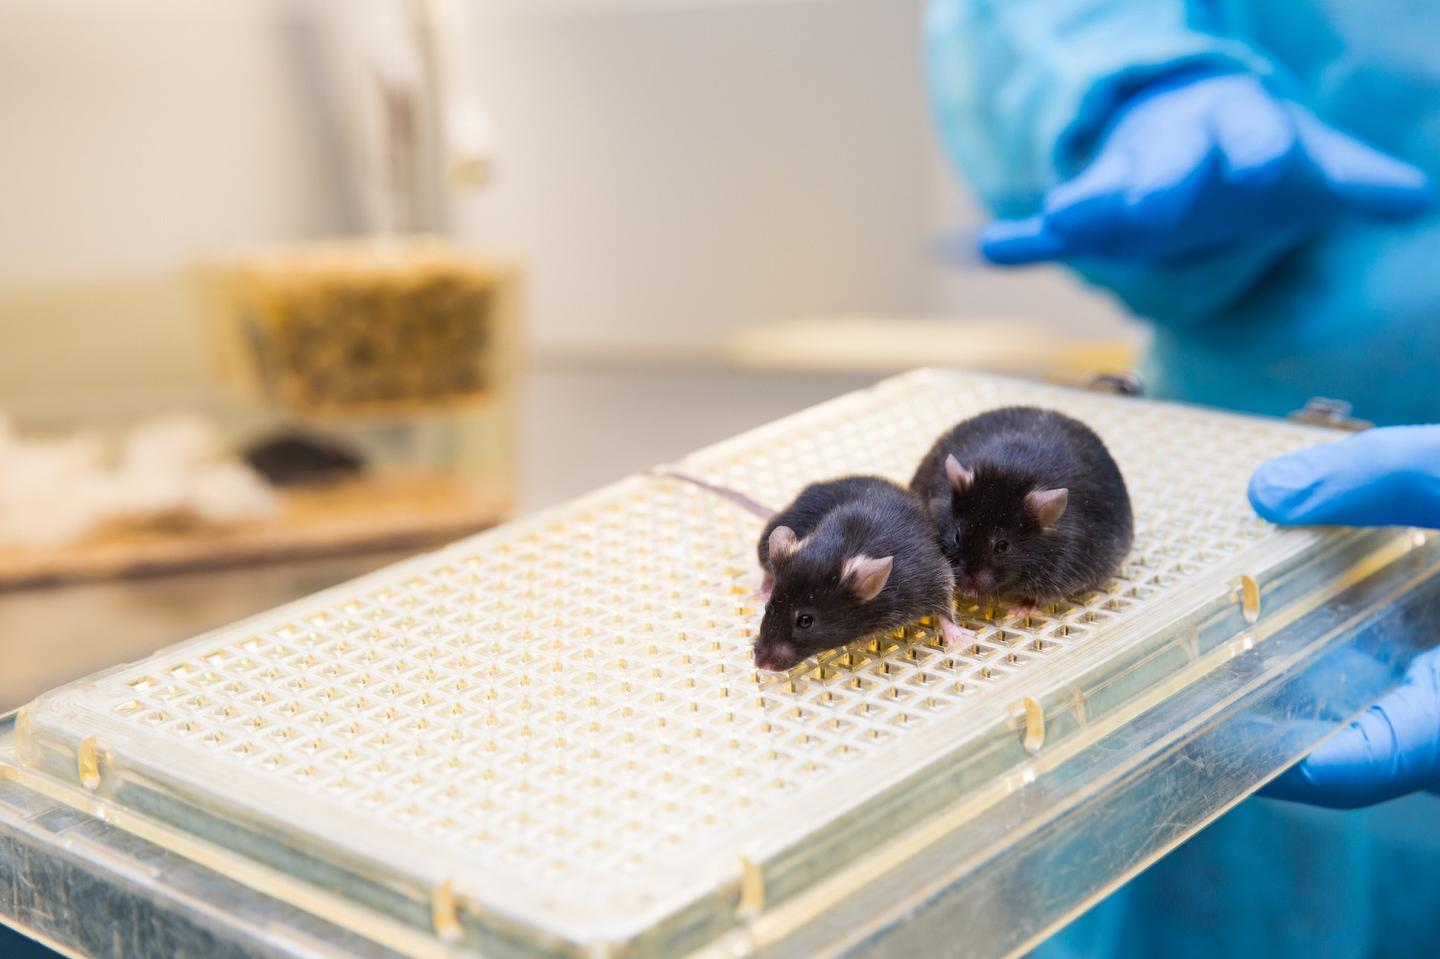 UCI MIND, the University of California, Irvine's Institute for Memory Impairments and Neurological Disorders, has announced a major breakthrough in its Alzheimer's research: the creation of a mouse with active human brain cells that can be ethically tested in the ongoing race for a cure